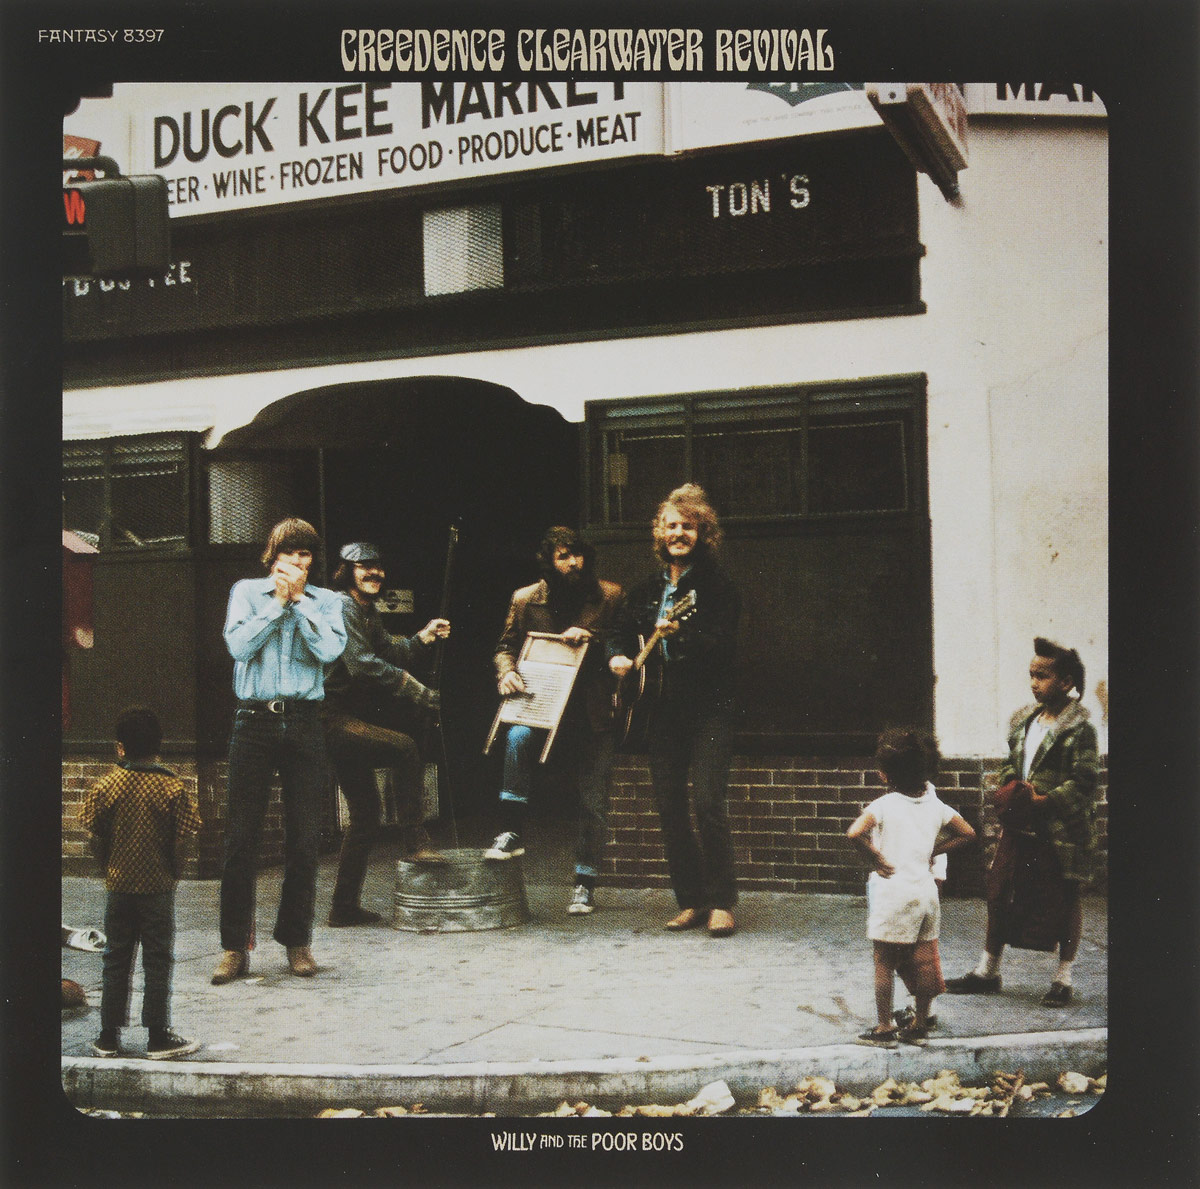 Creedence Clearwater Revival Creedence Clearwater Revival. Willy And The Poor Boys. 40th Anniversary Edition revival